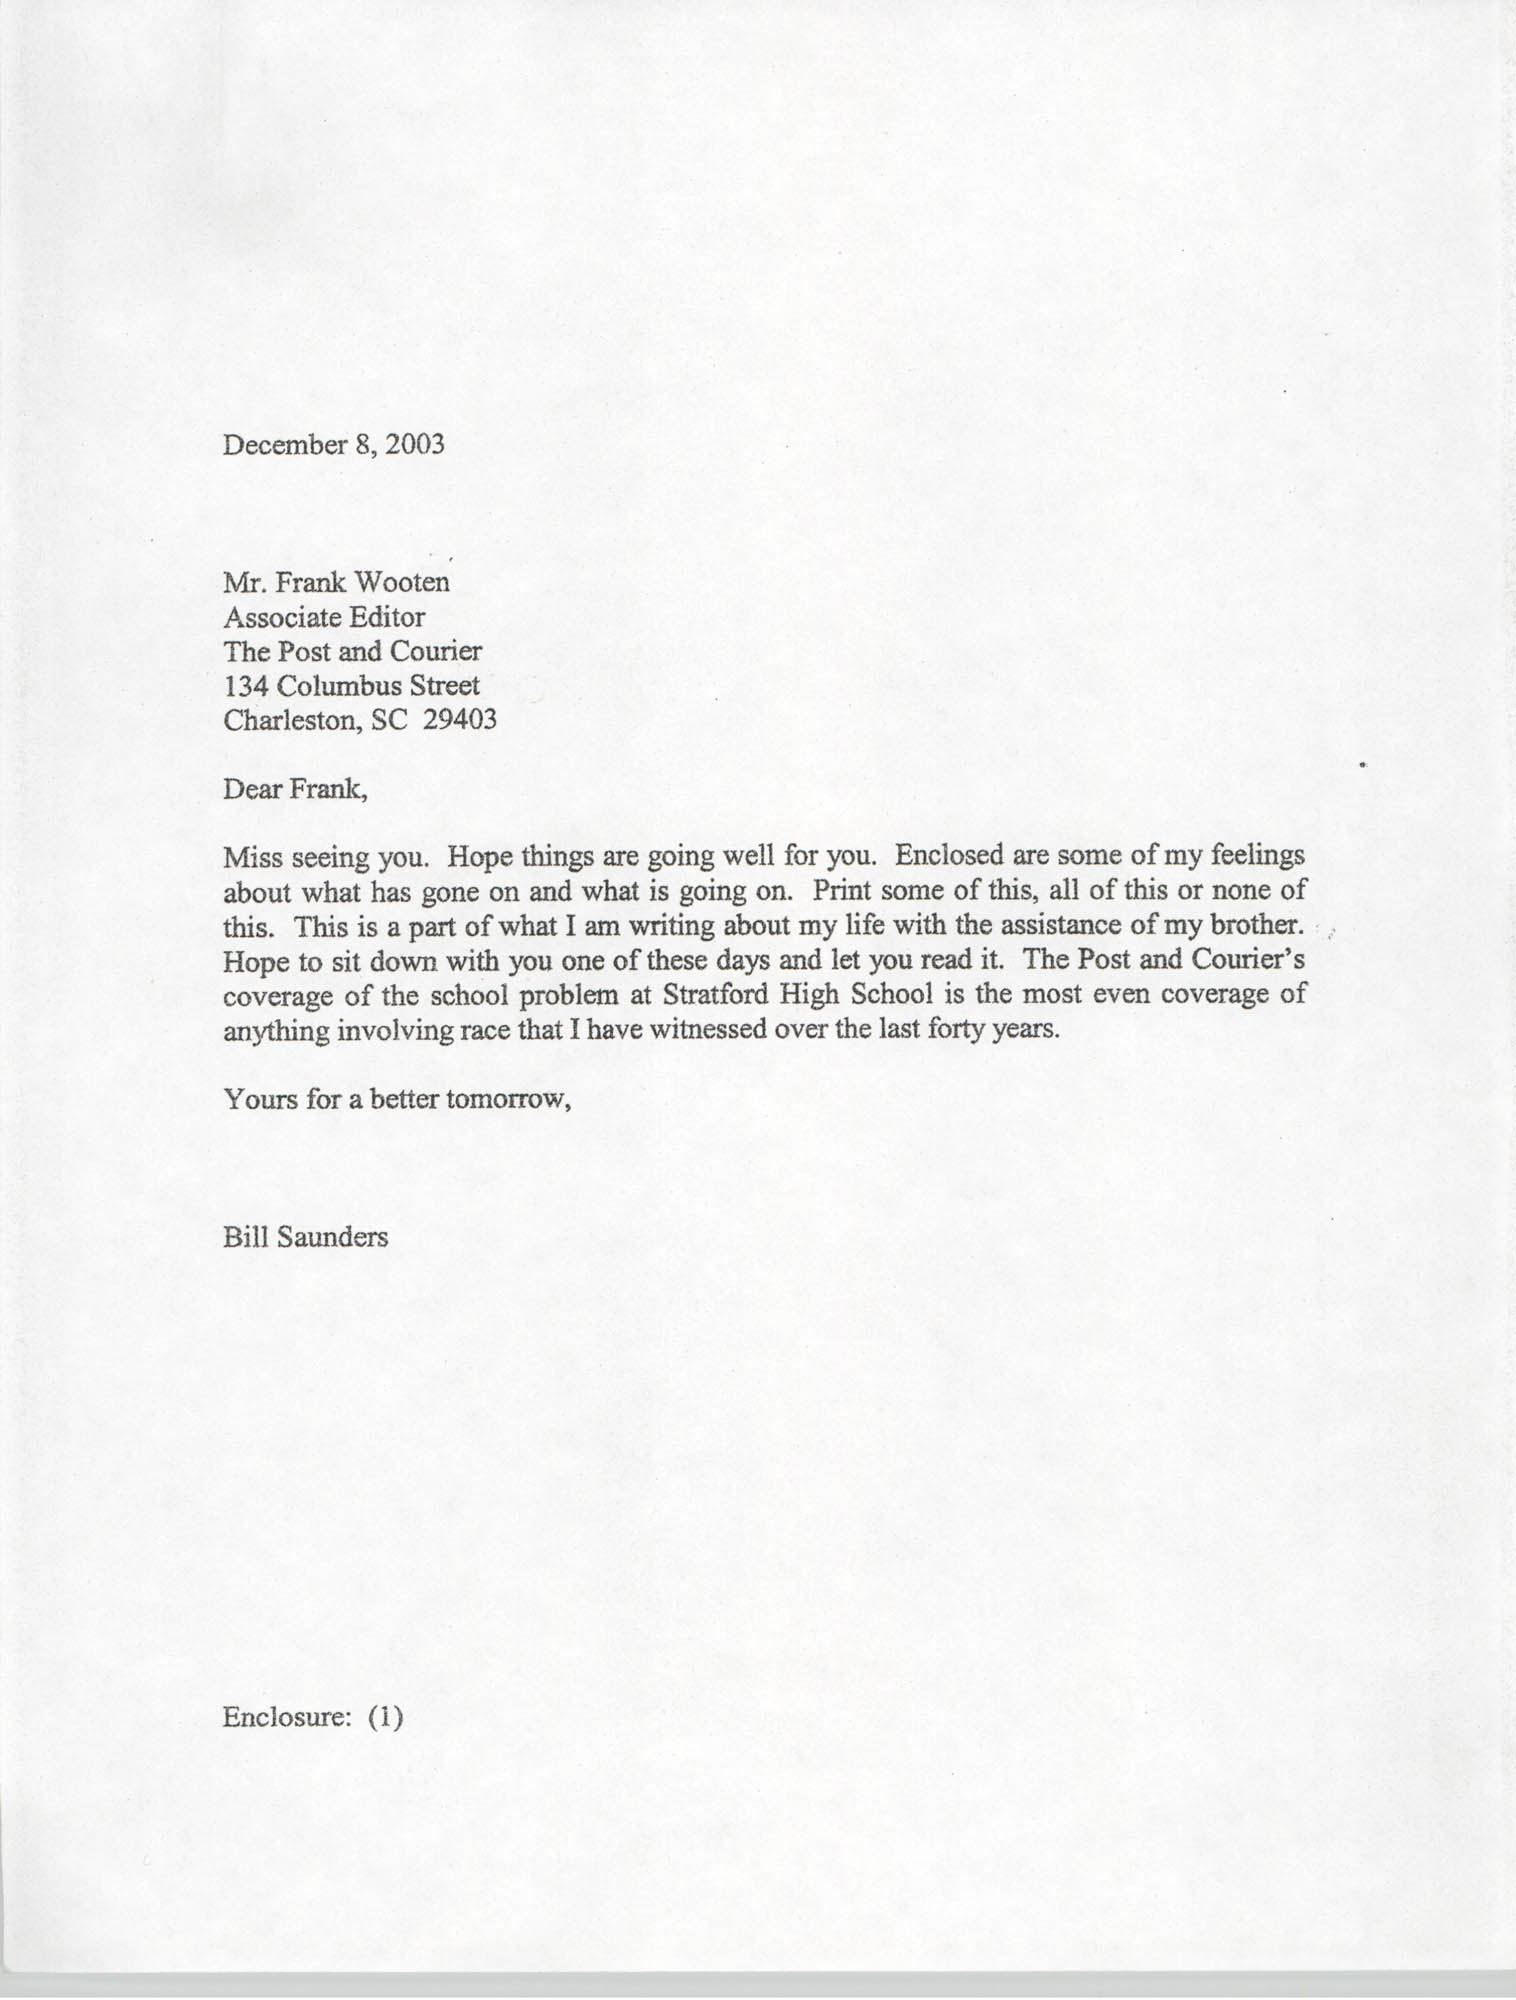 Letter from Bill Saunders to Frank Wooten, December 9, 2003